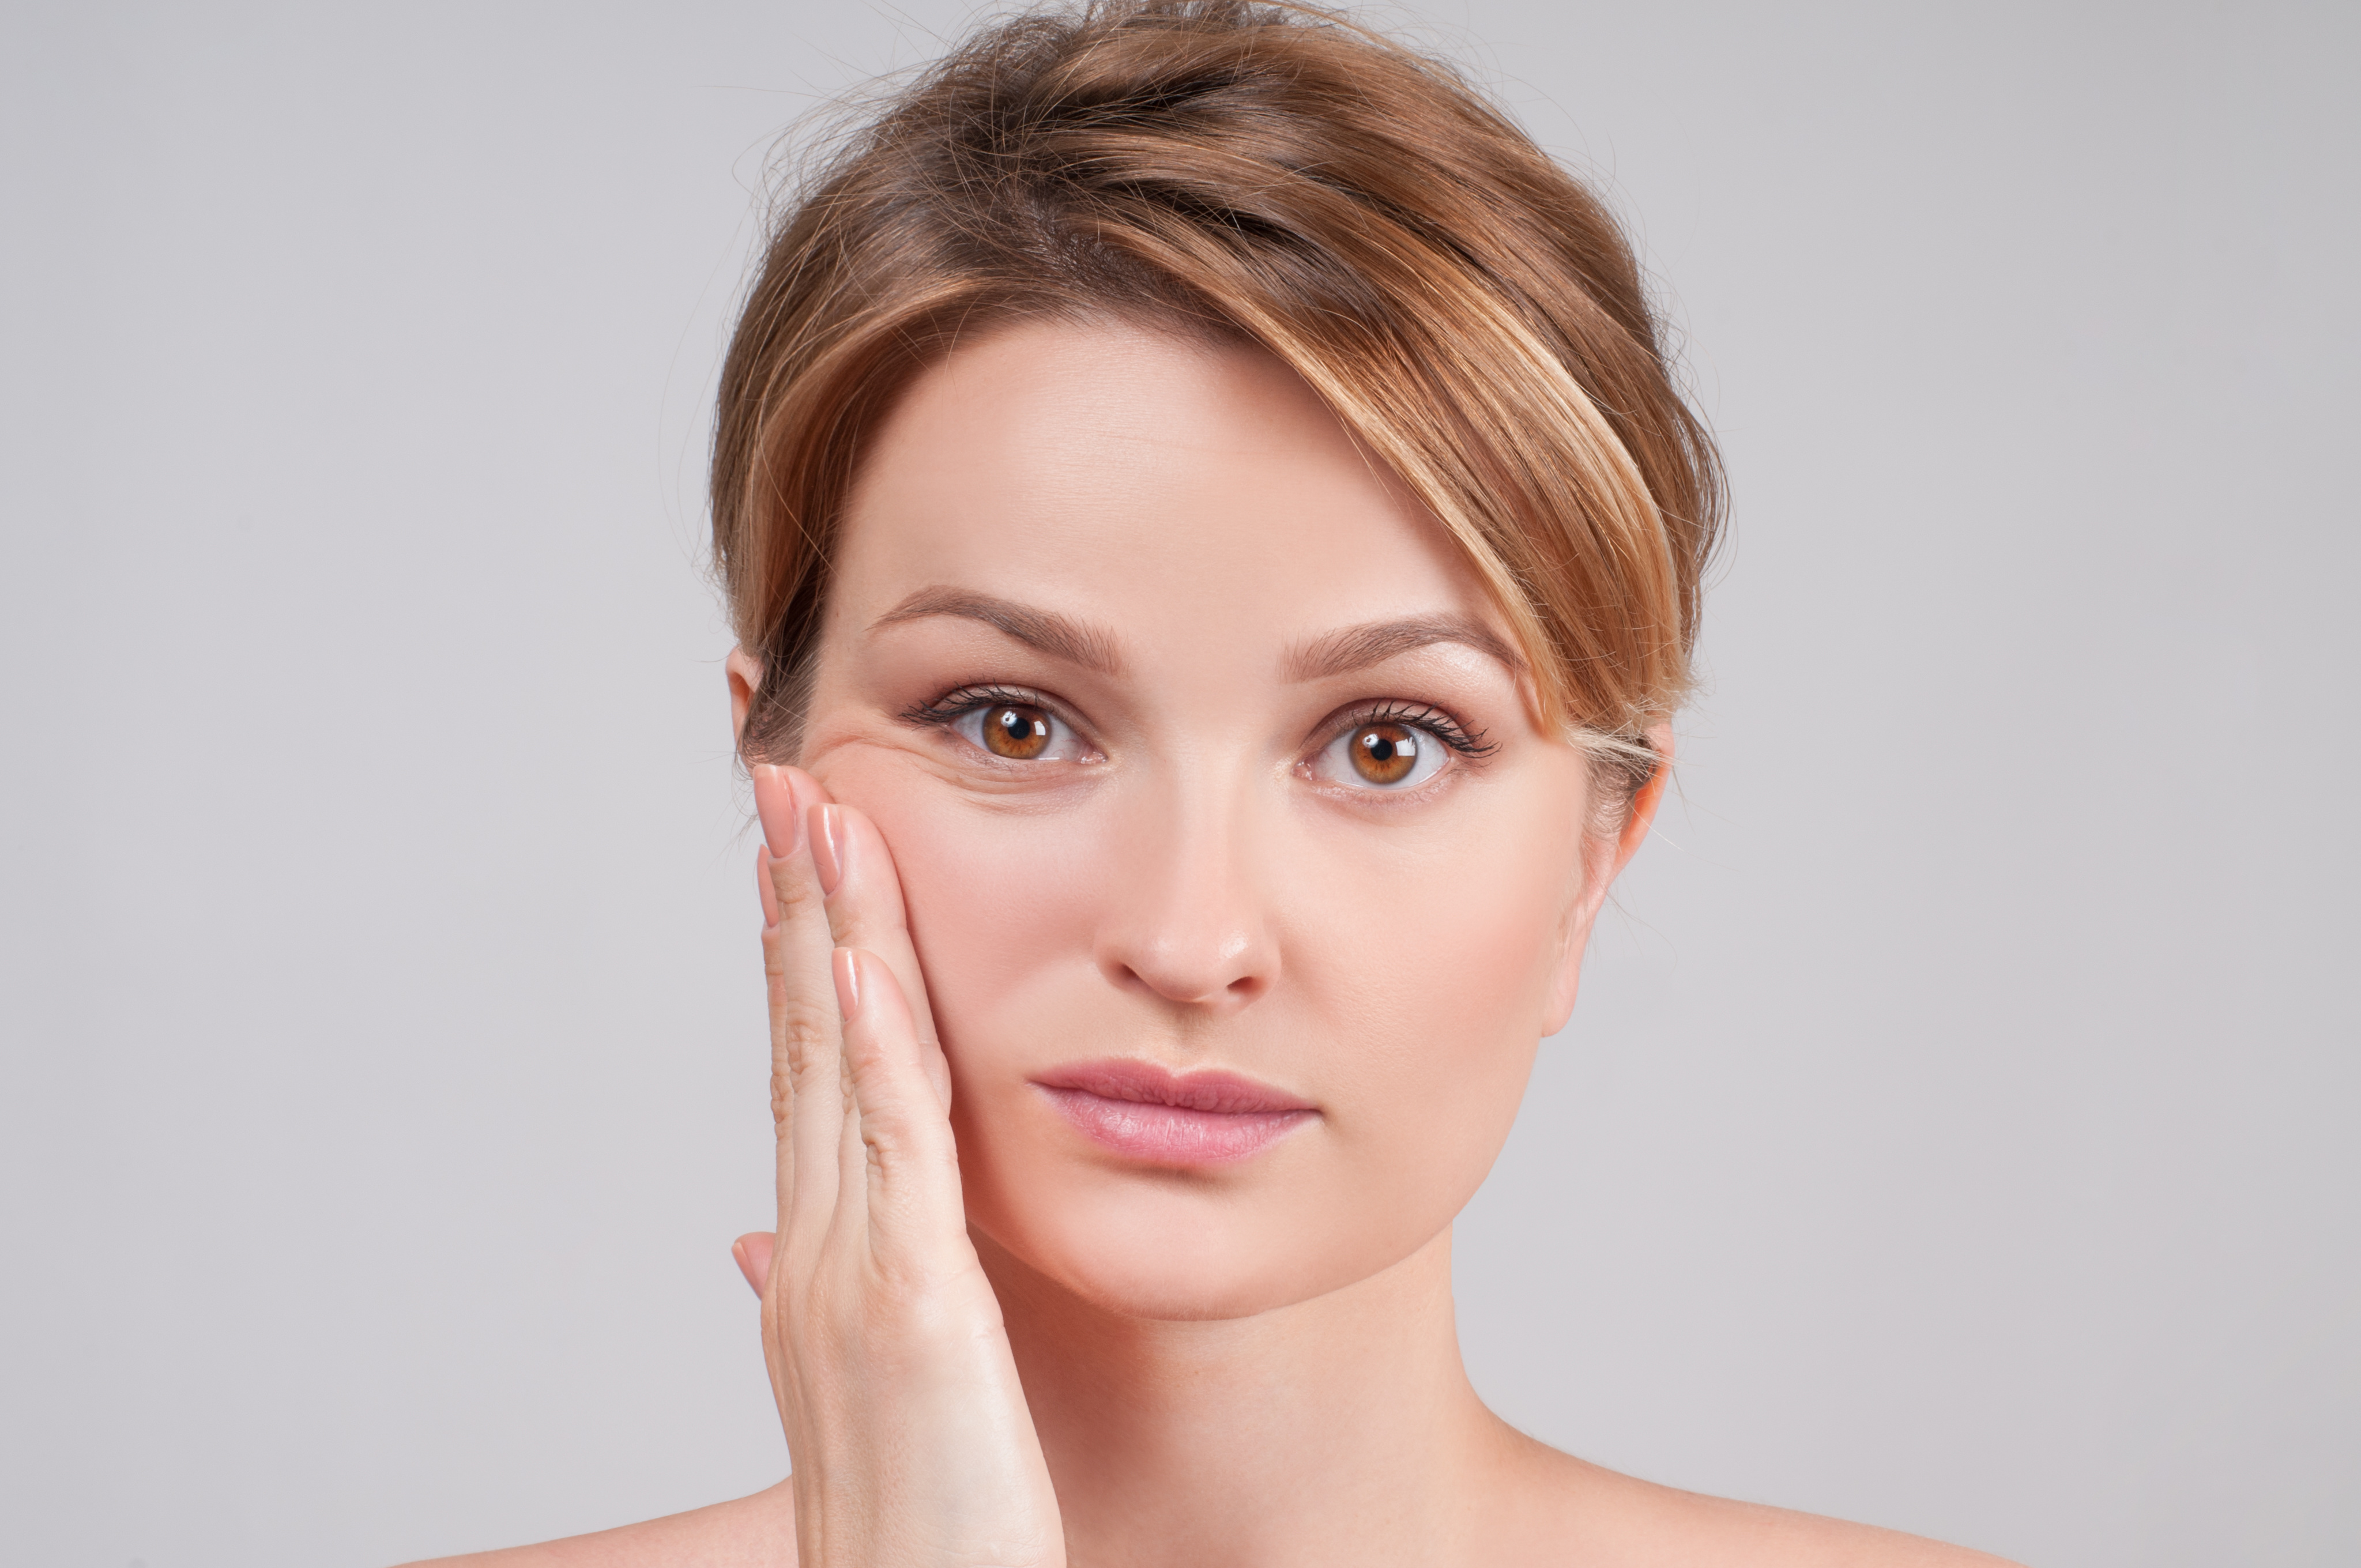 Is BOTOX or Anti-Aging Serum Biotulin Better?